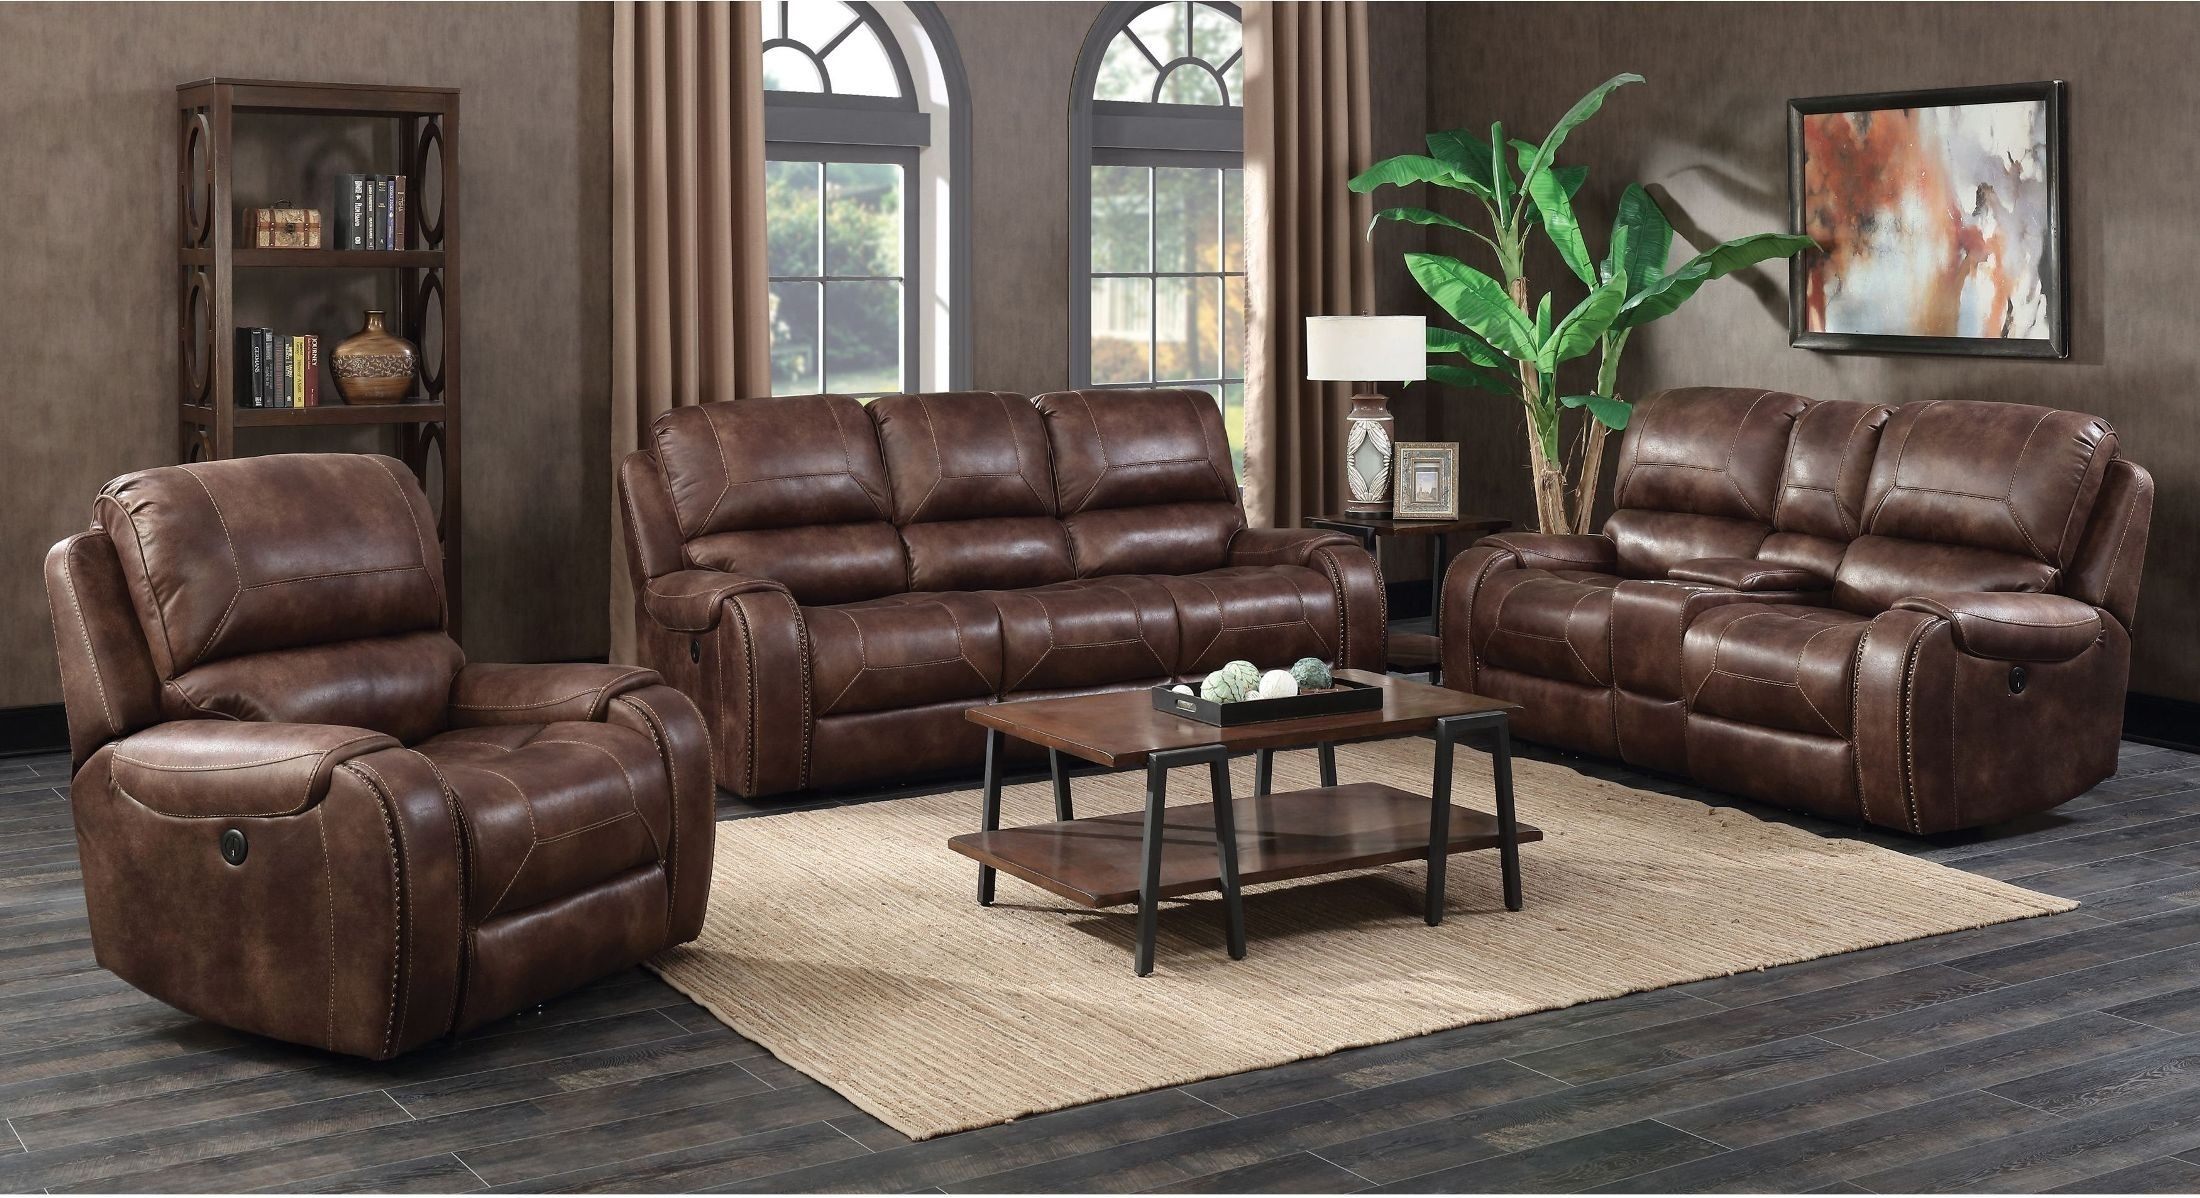 Jennings Waylon Mocha Power Reclining Living Room Set From Prime Within Waylon 3 Piece Power Reclining Sectionals (View 6 of 25)